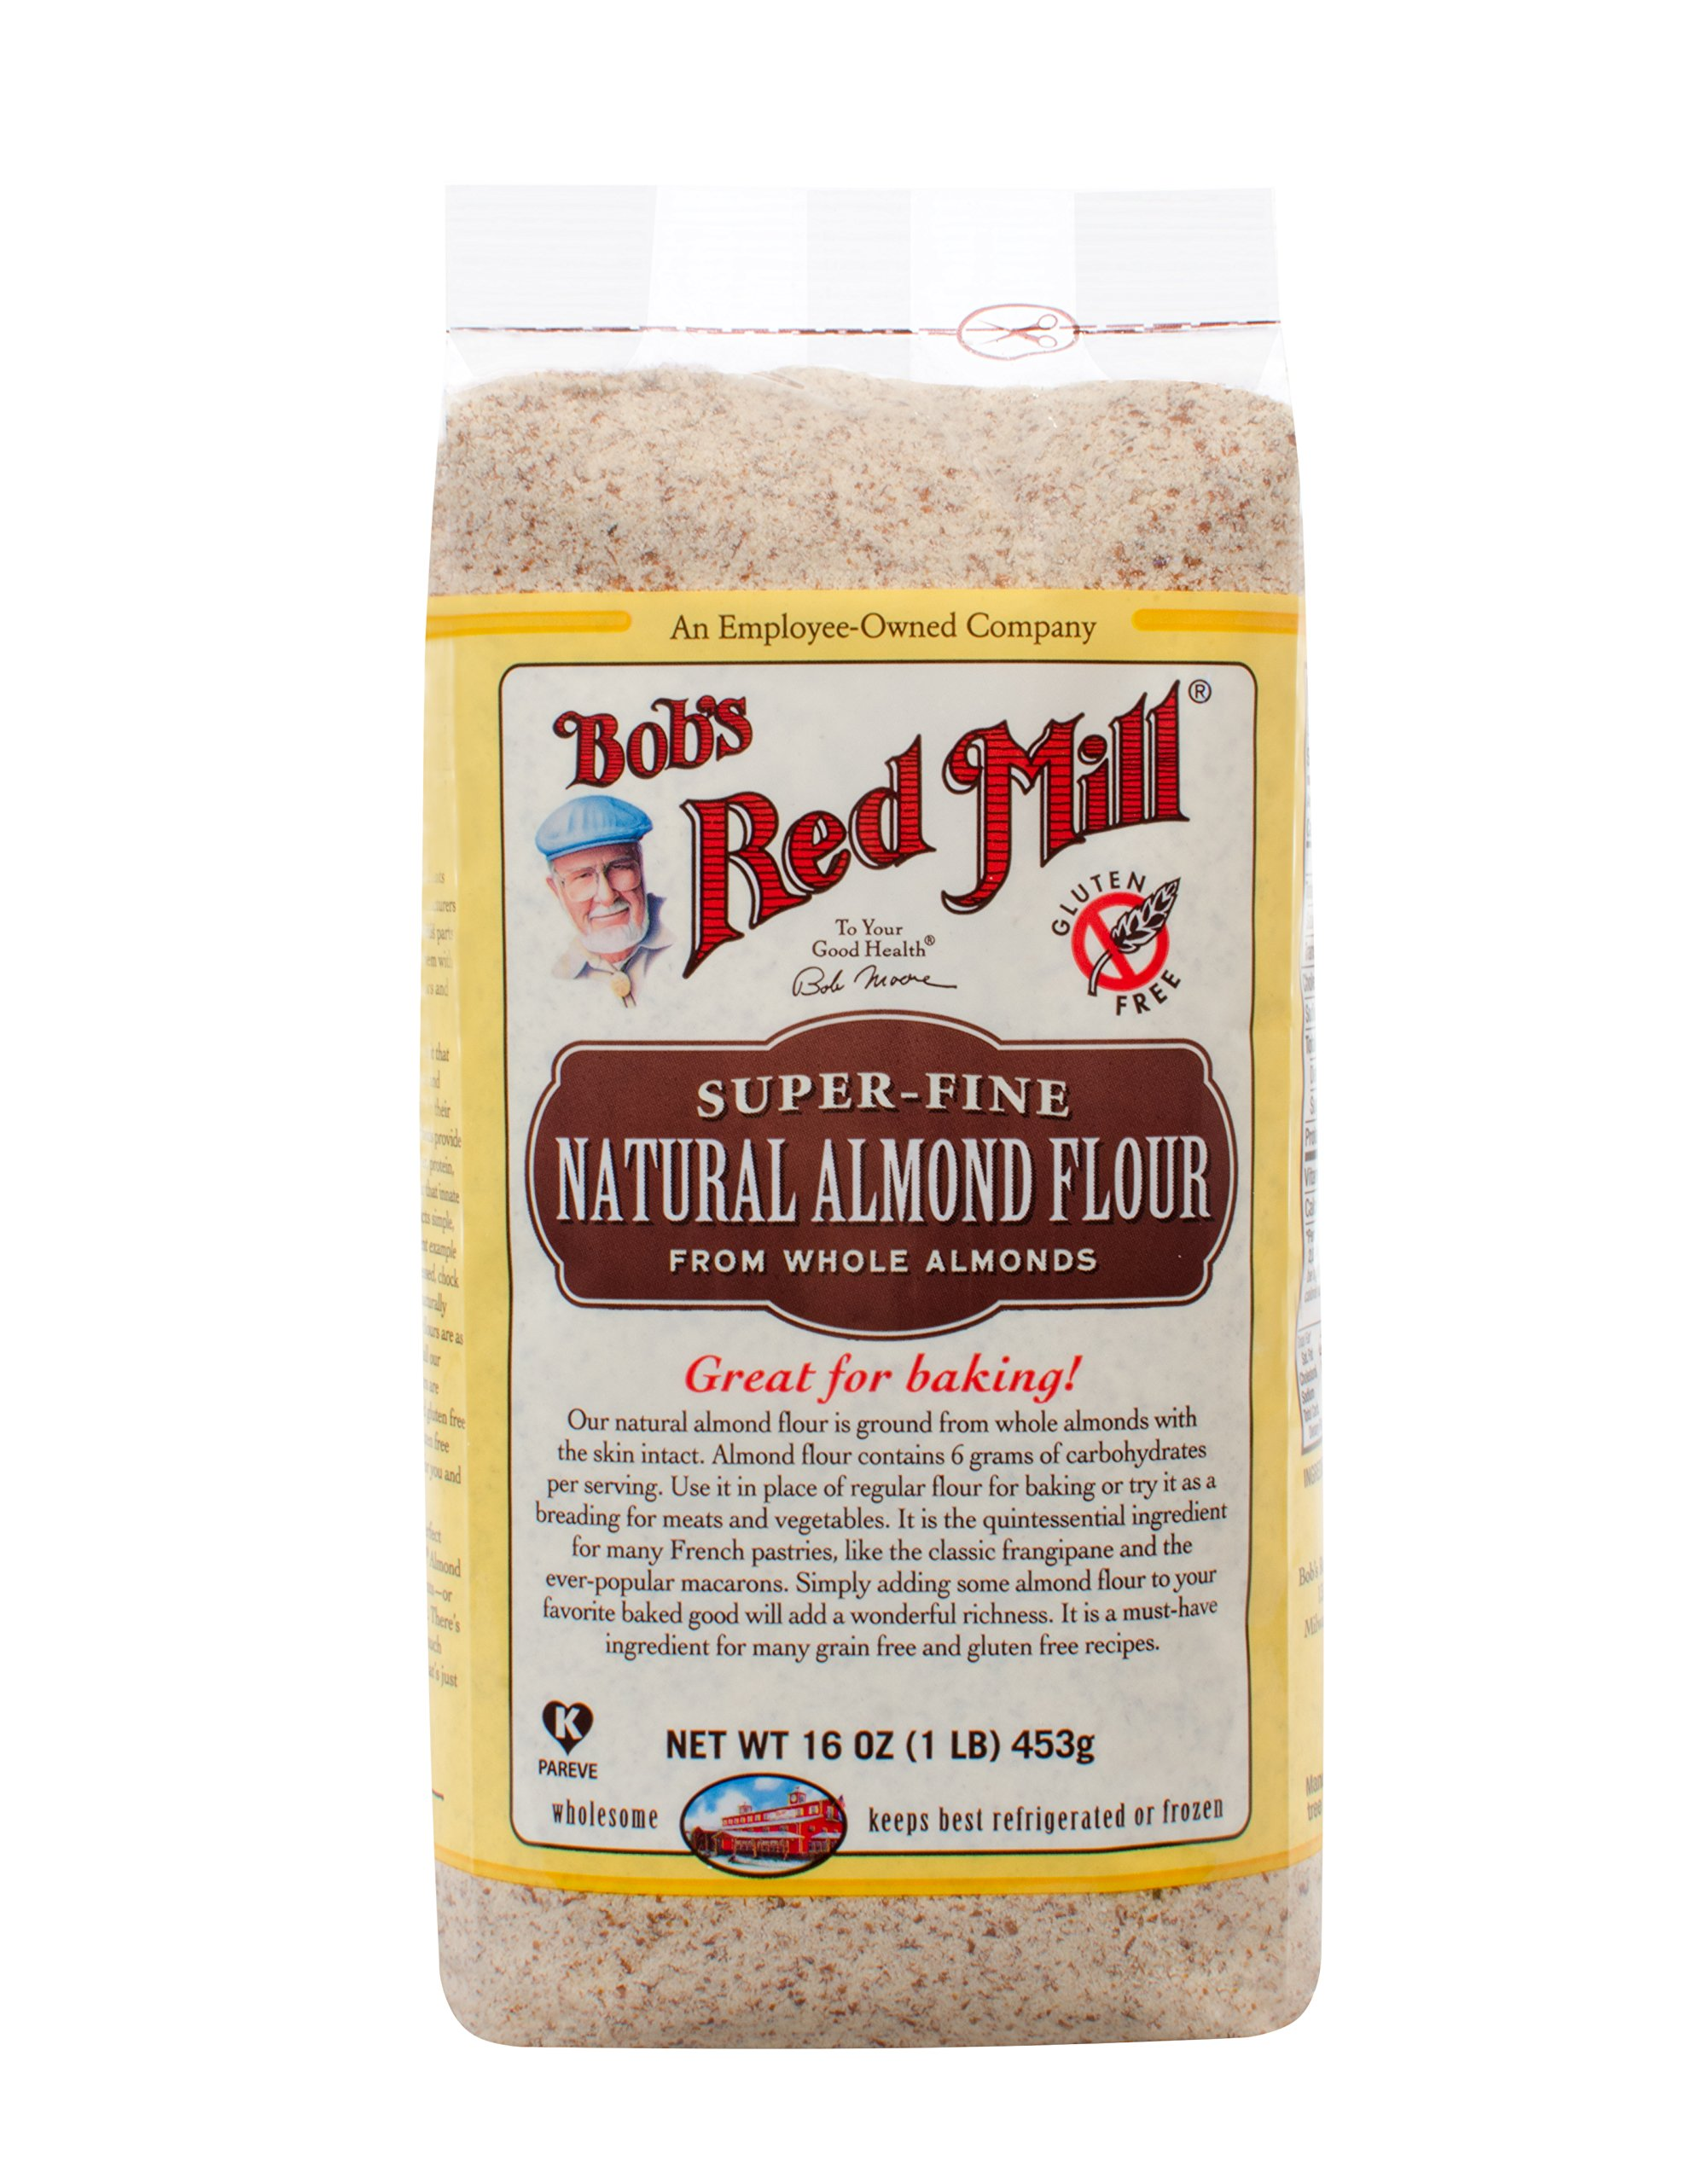 Bob's Red Mill Super-Fine Natural Almond Flour, 16-ounce